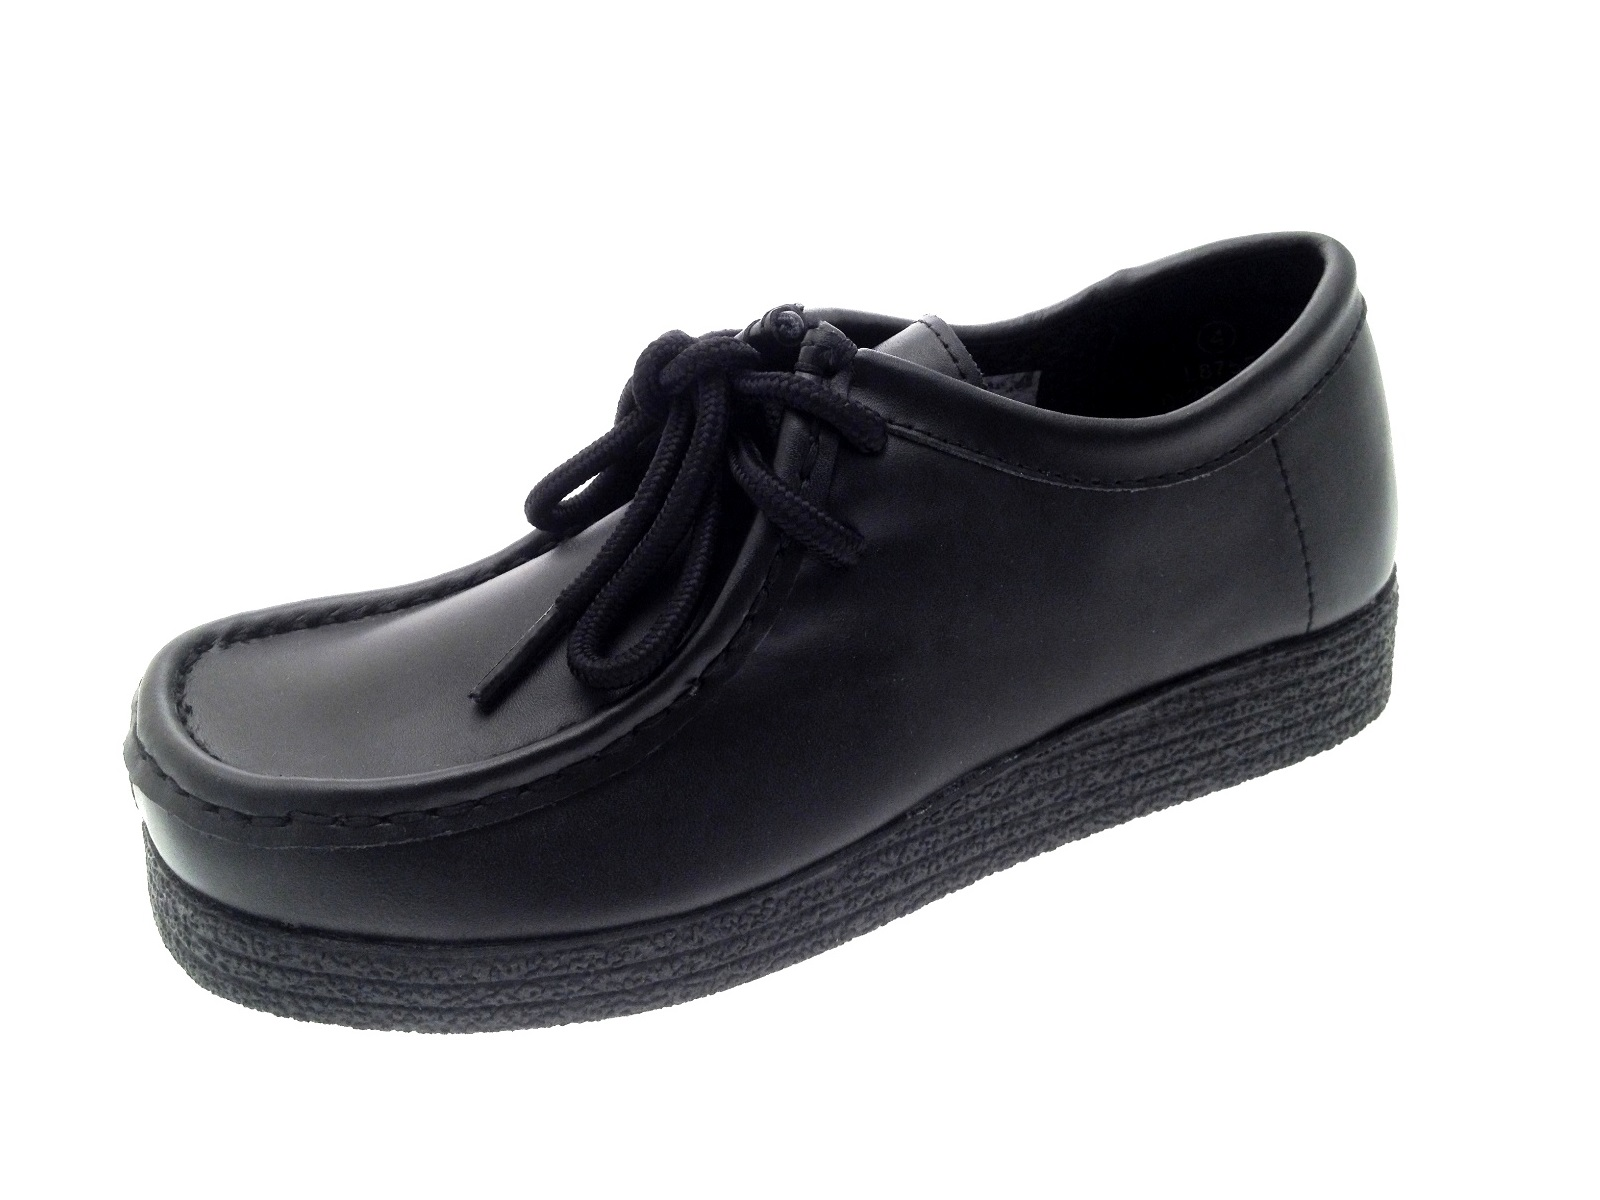 Mens Black Leather Shoes Size